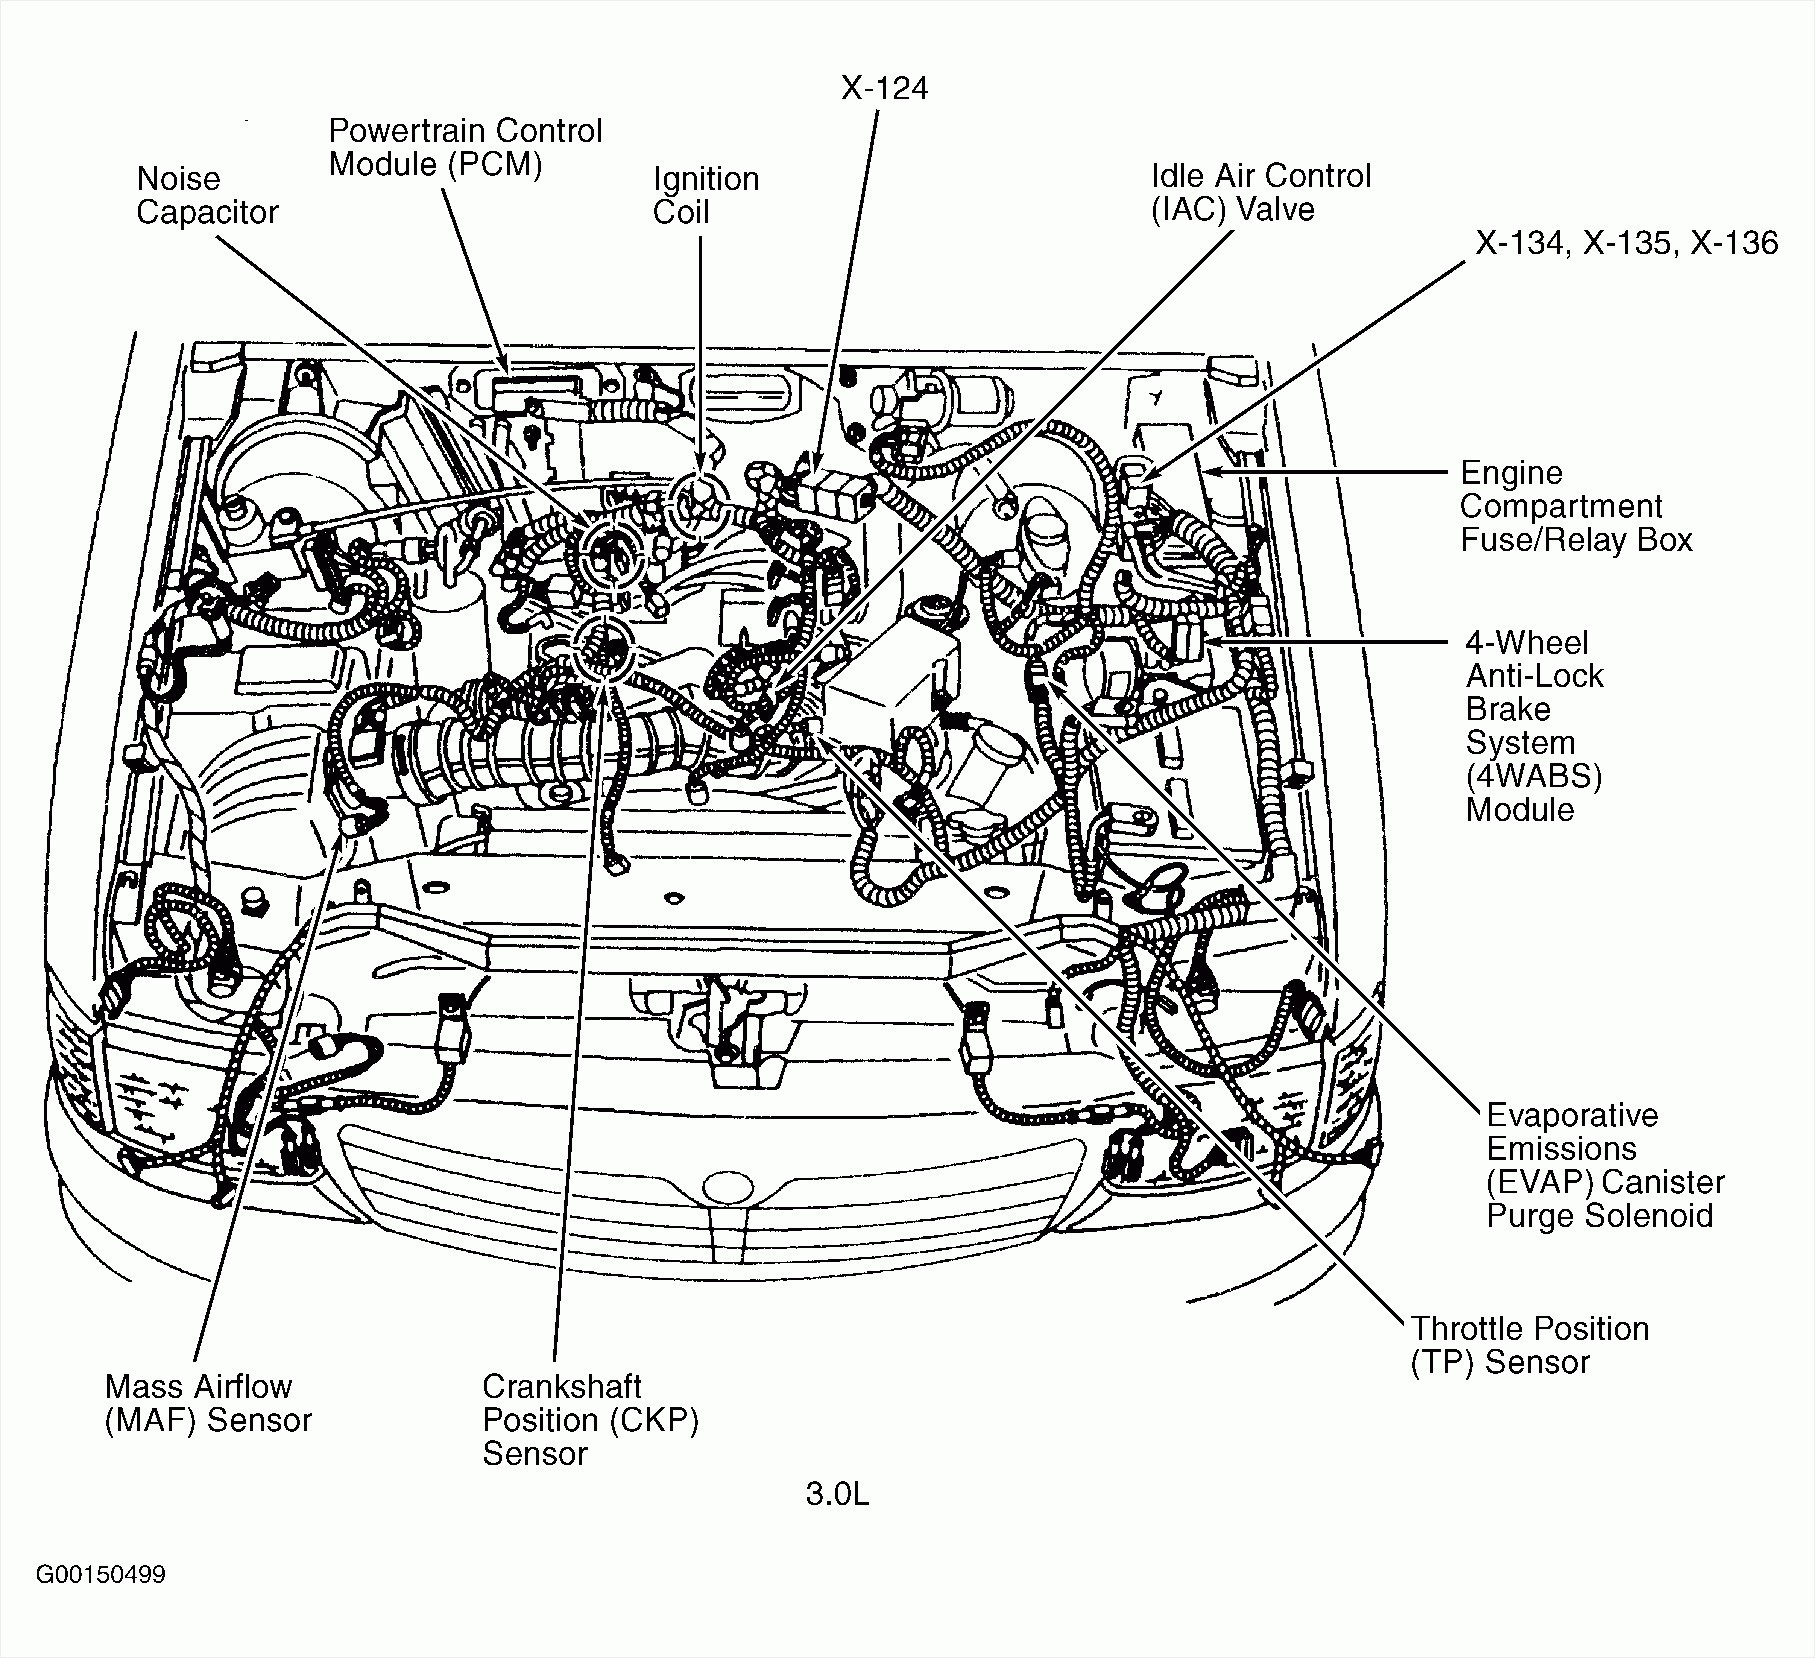 hight resolution of 1993 toyota 3 0 v6 engine diagram wiring diagram list 1992 toyota camry 3 0 v6 engine diagram